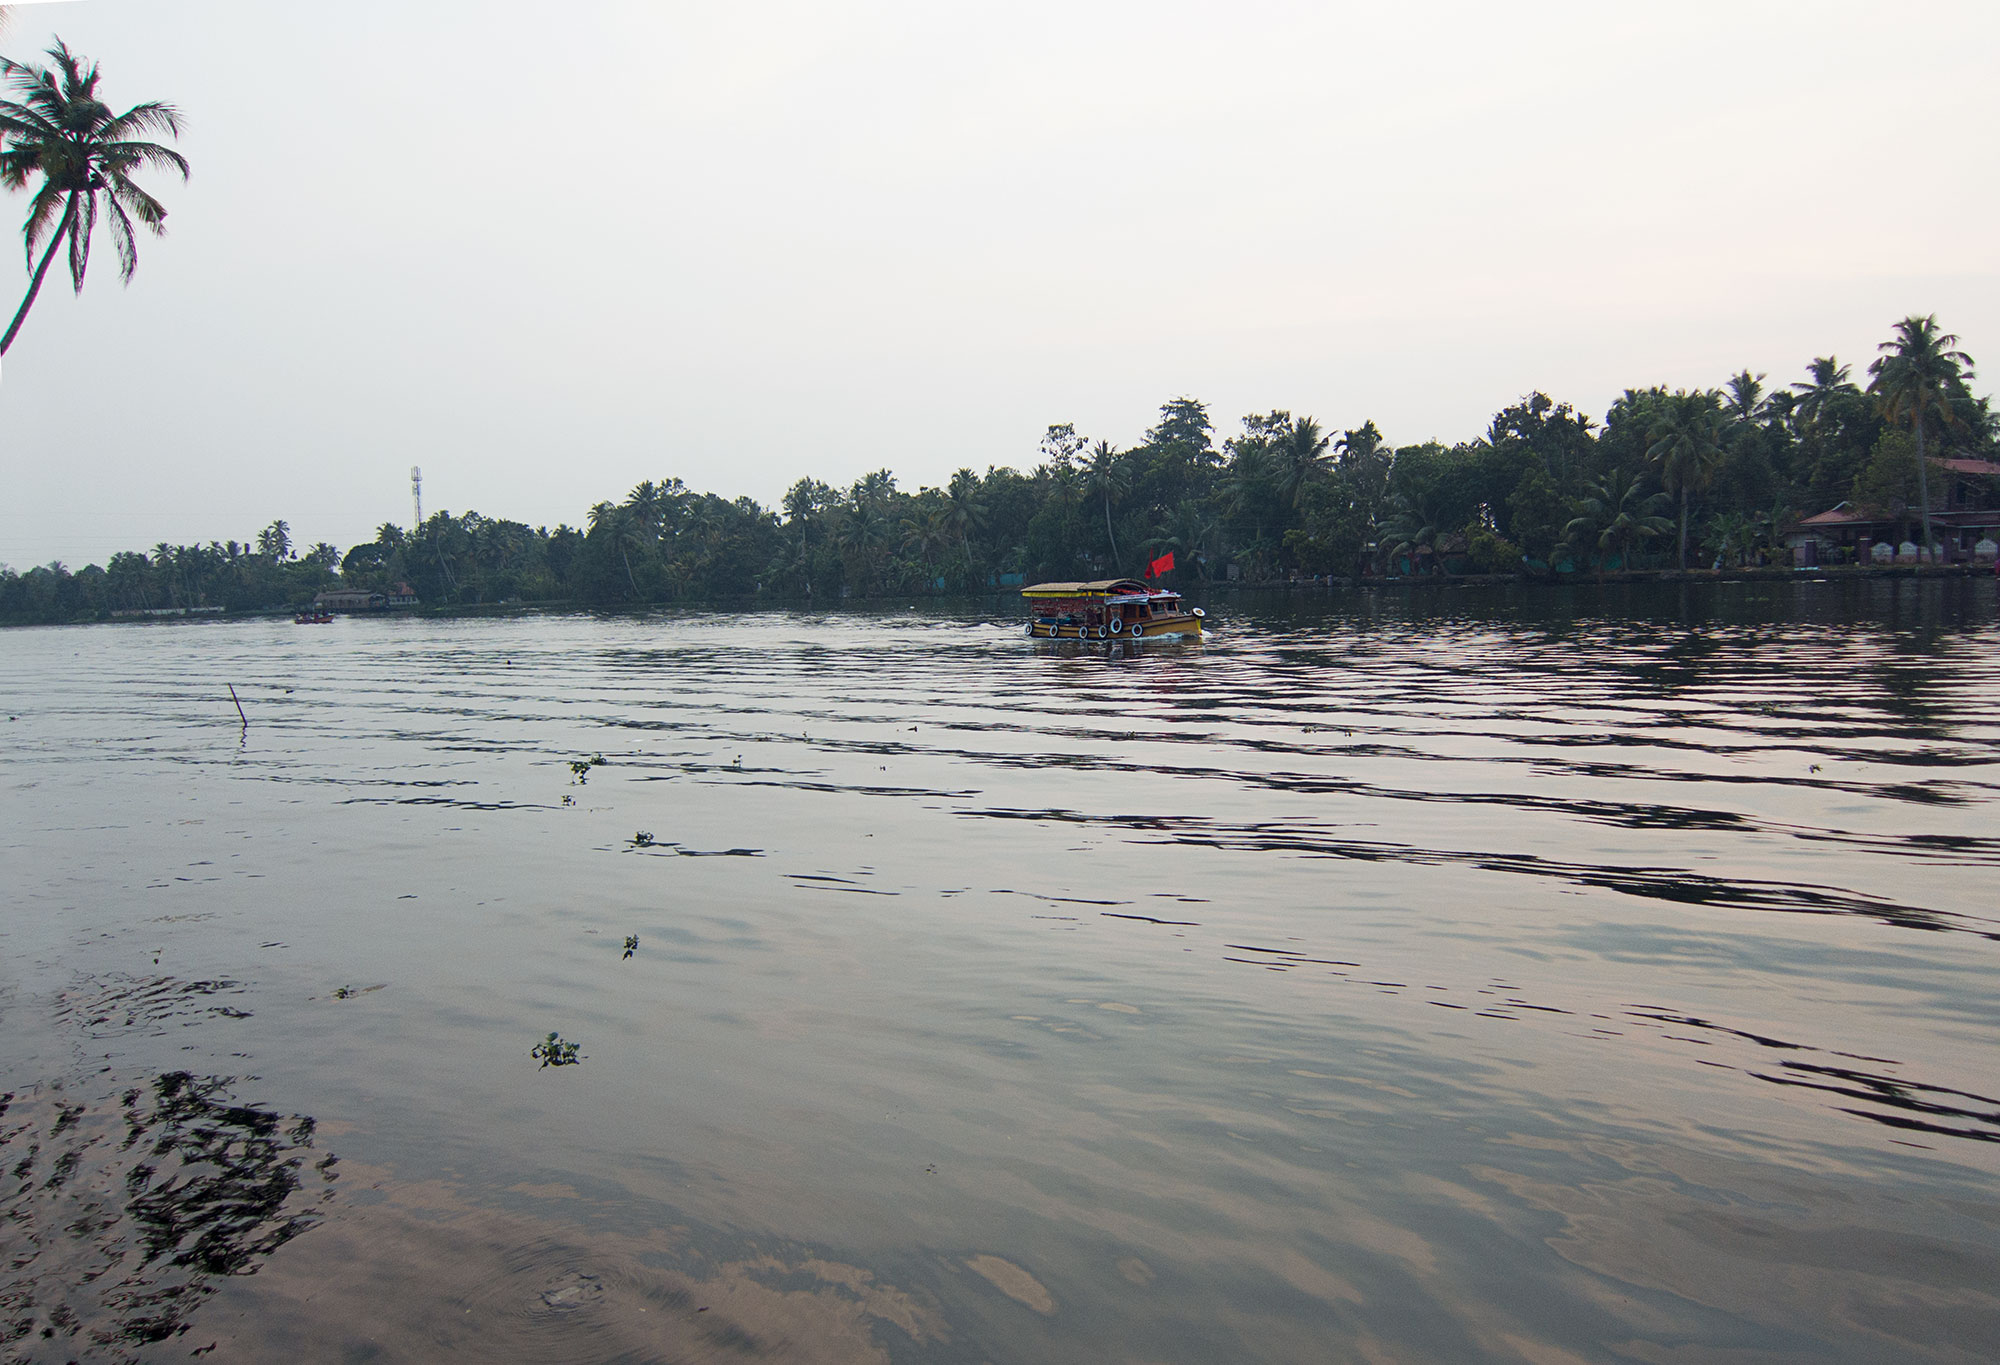 View of the river at dusk.